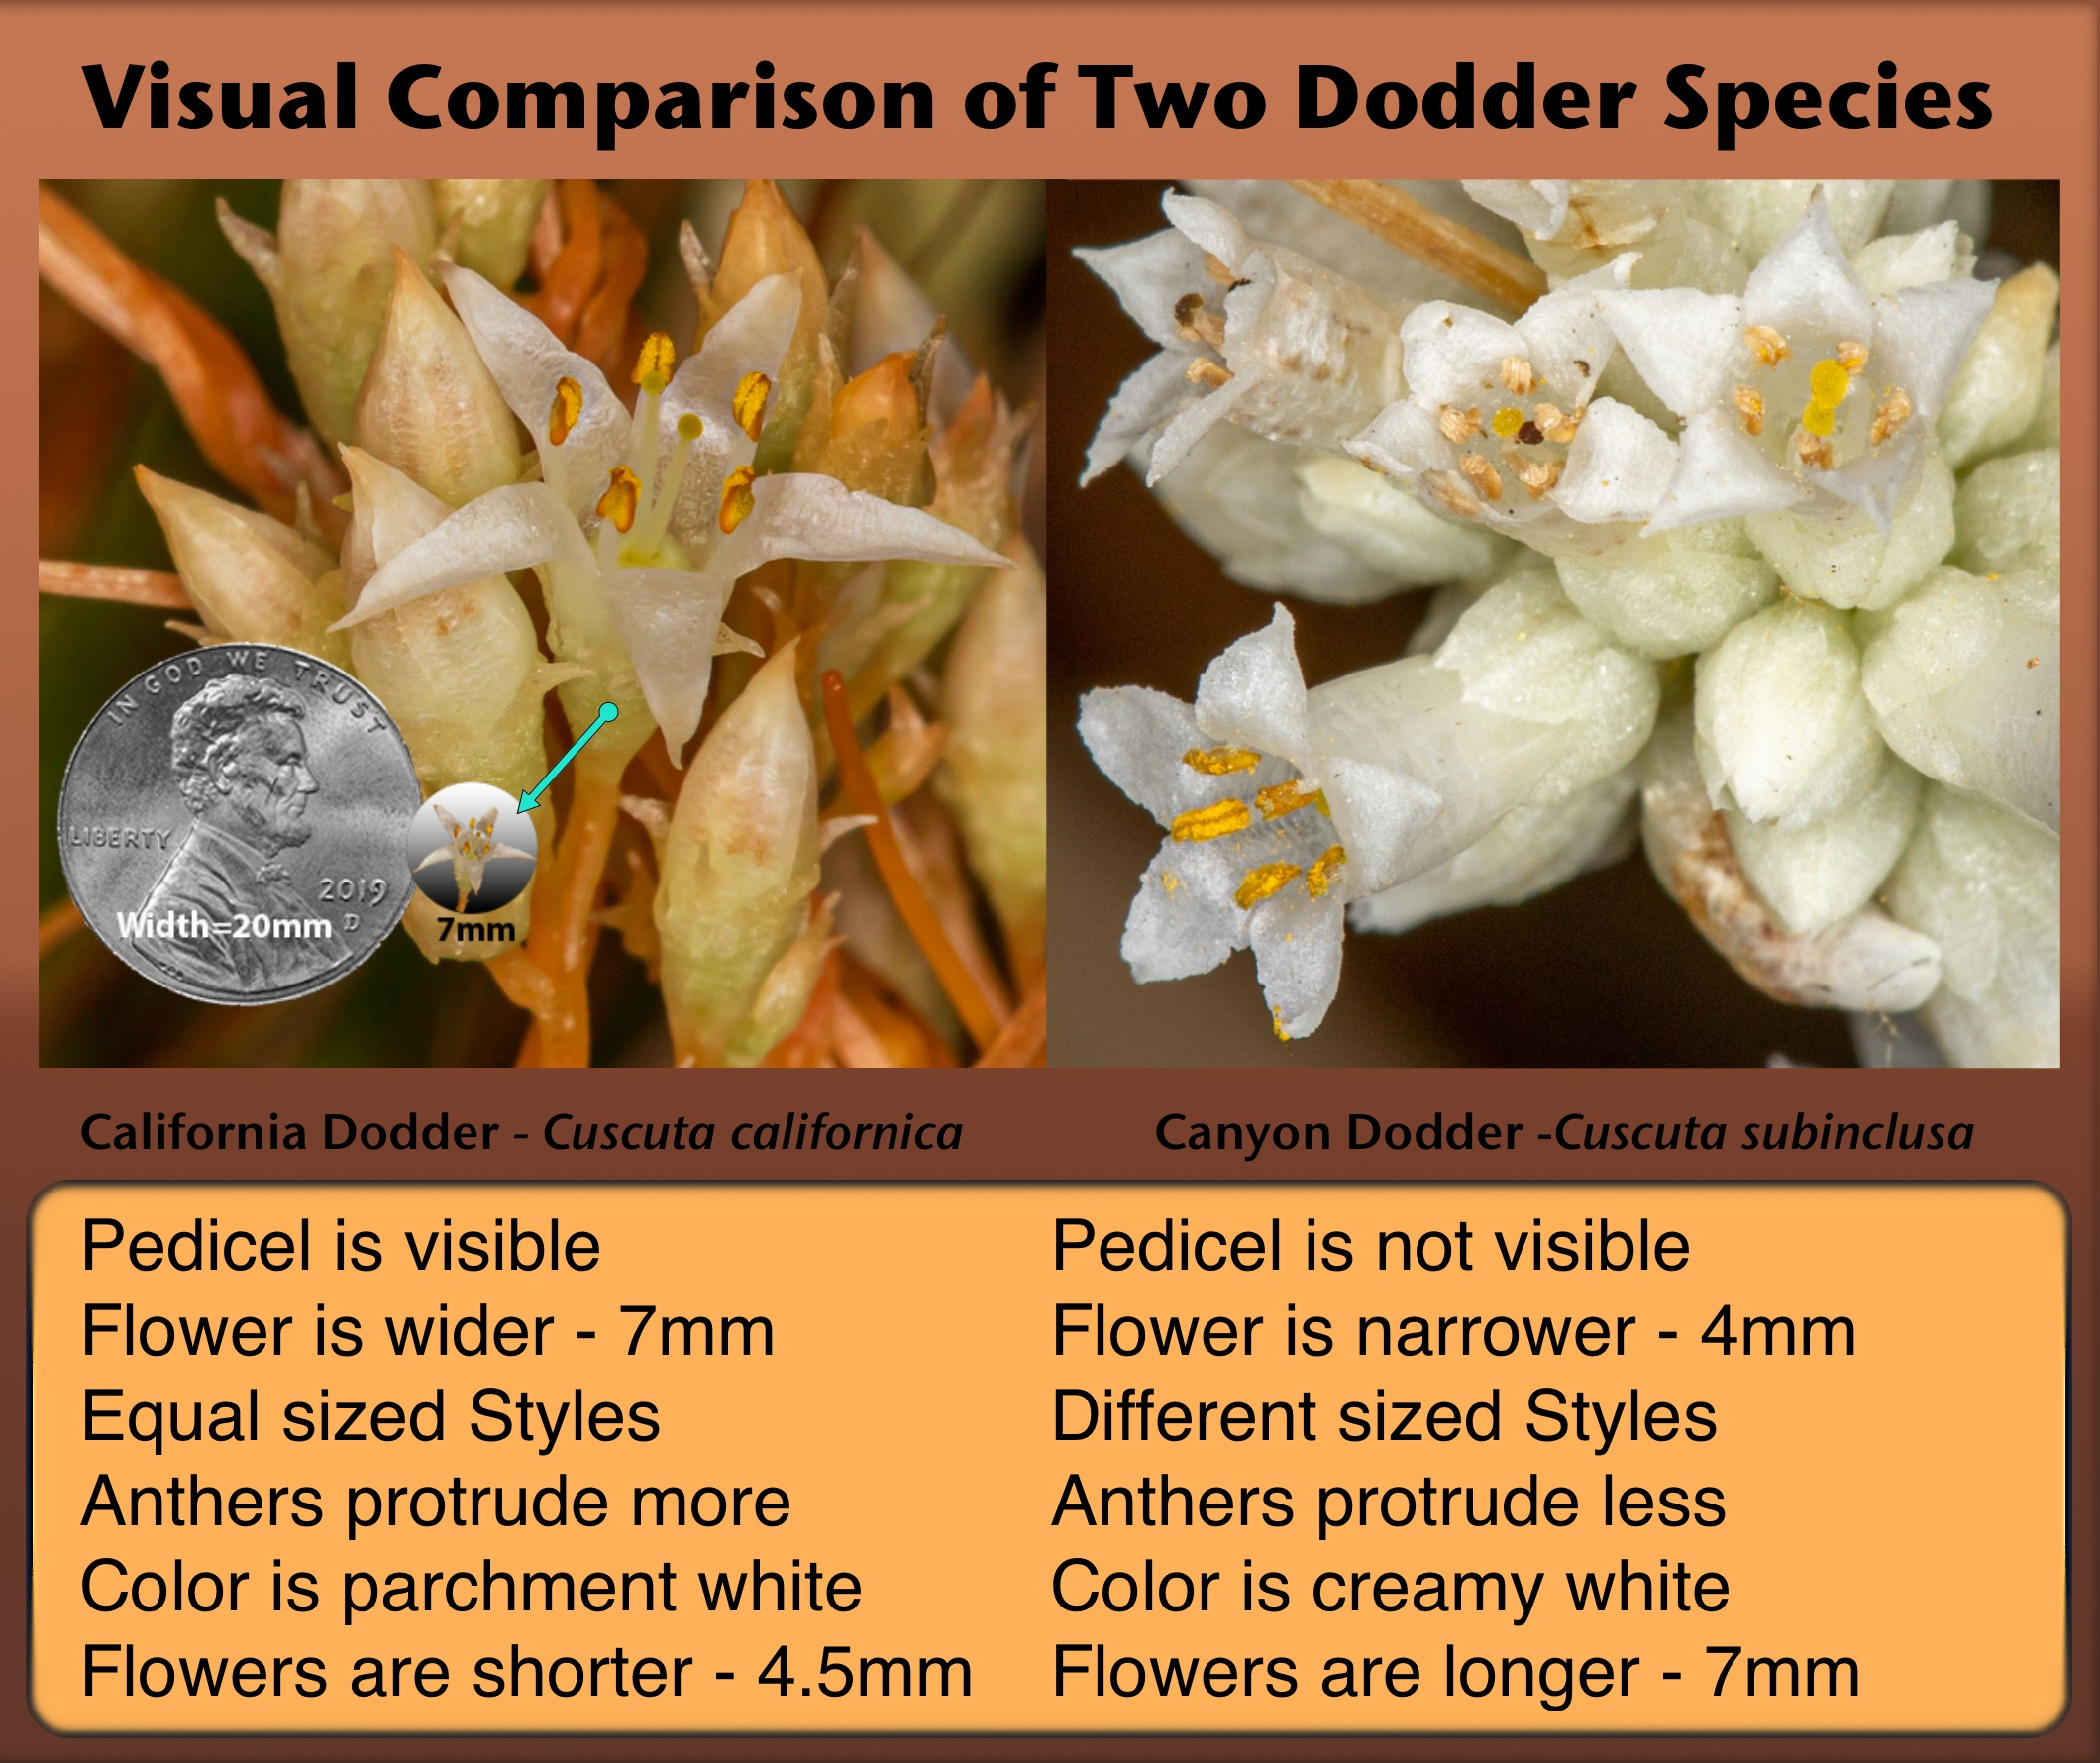 Comparison of Flowers